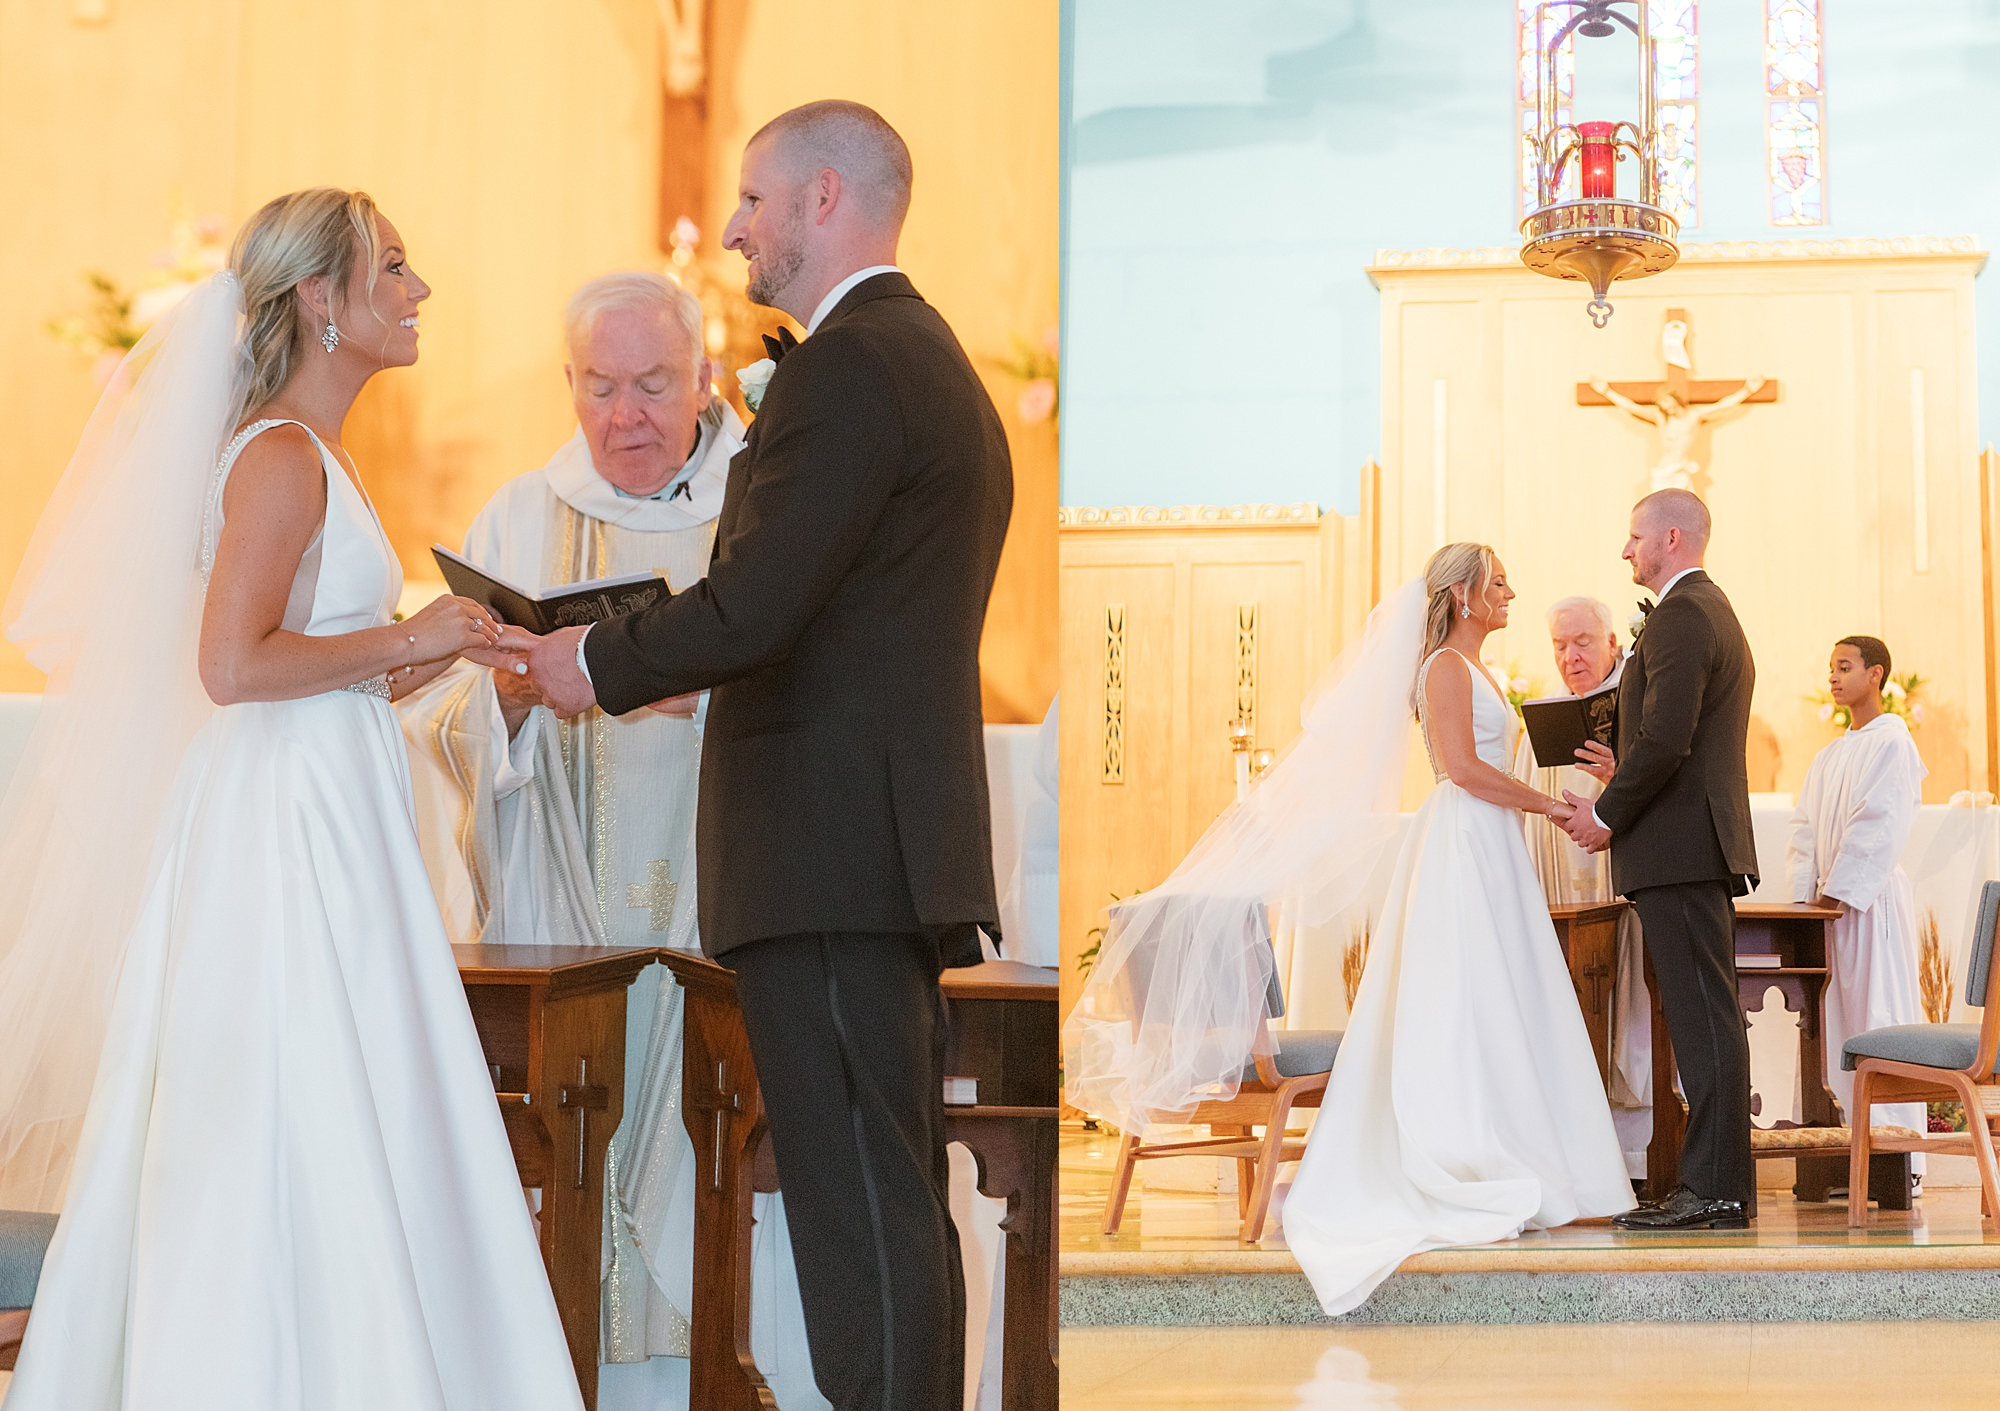 Natural and Vibrant Wedding Photography at the Reeds in Stone Harbor NJ by Magdalena Studios 0024